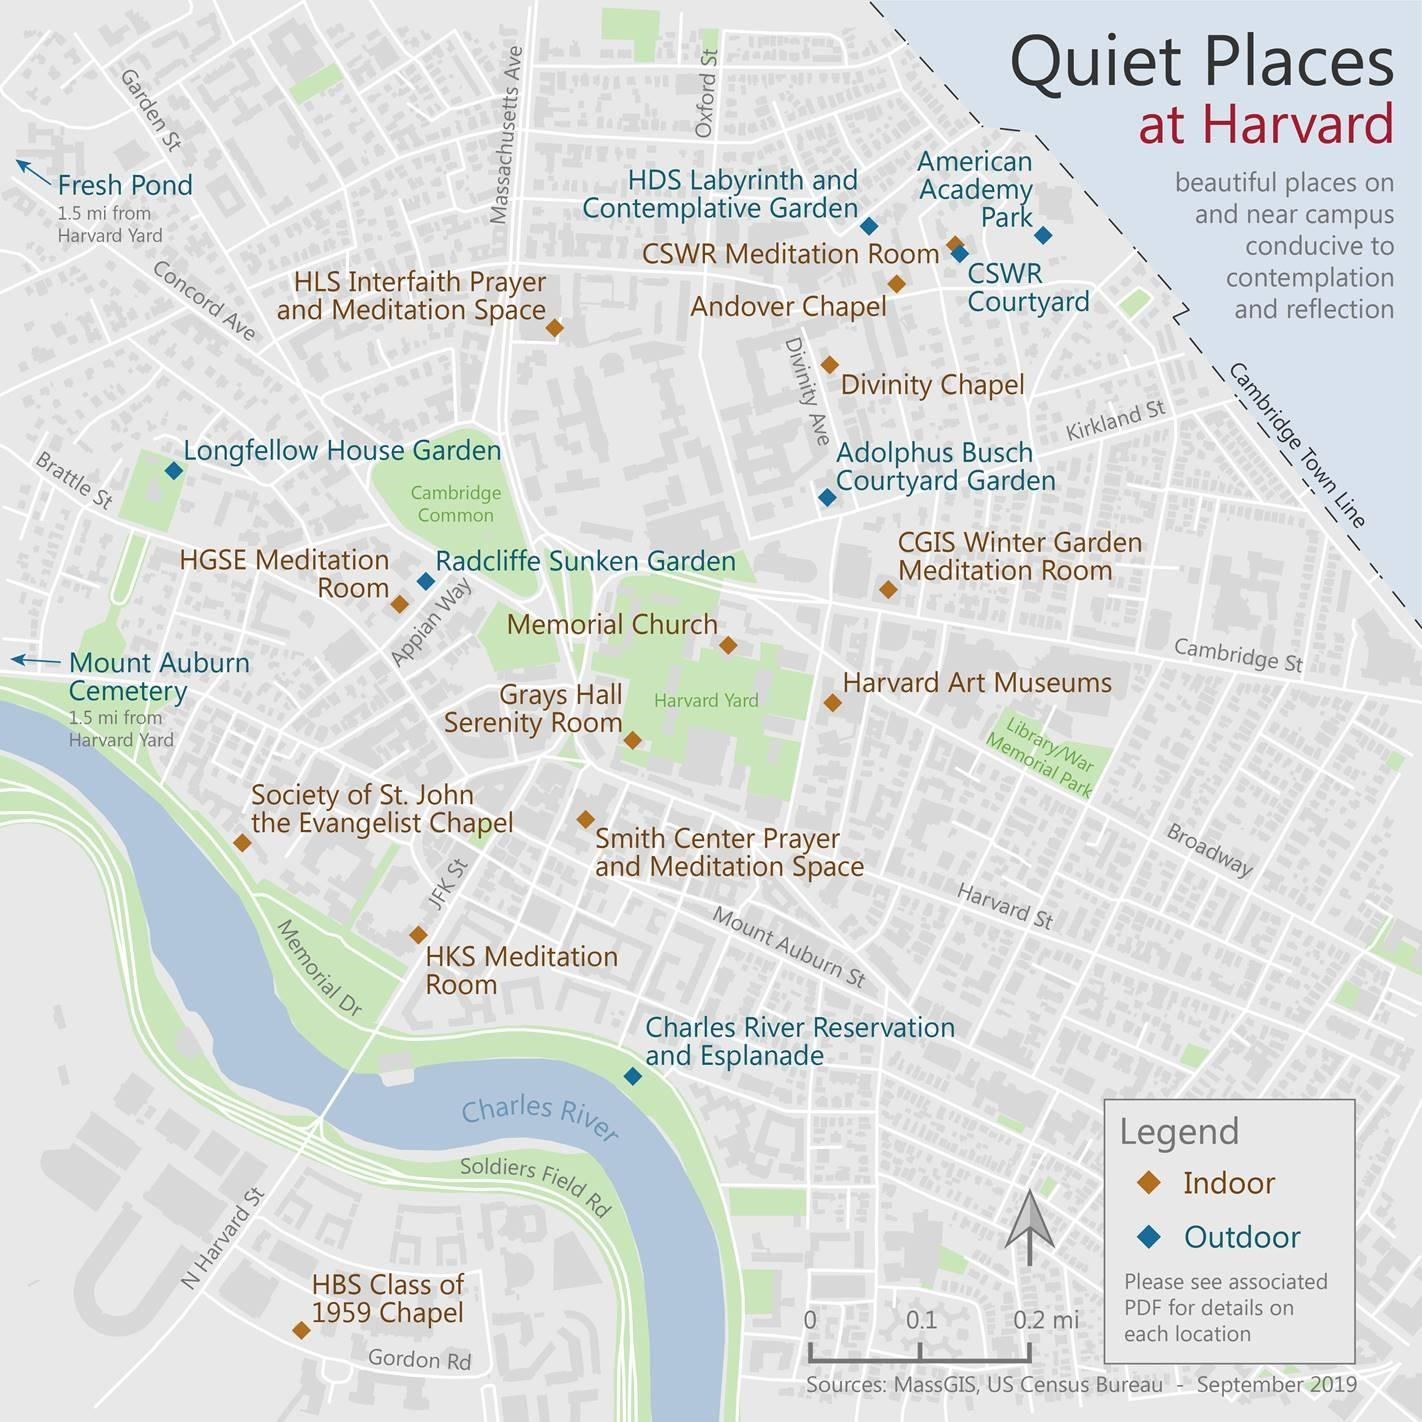 Quiet Places Map at Harvard